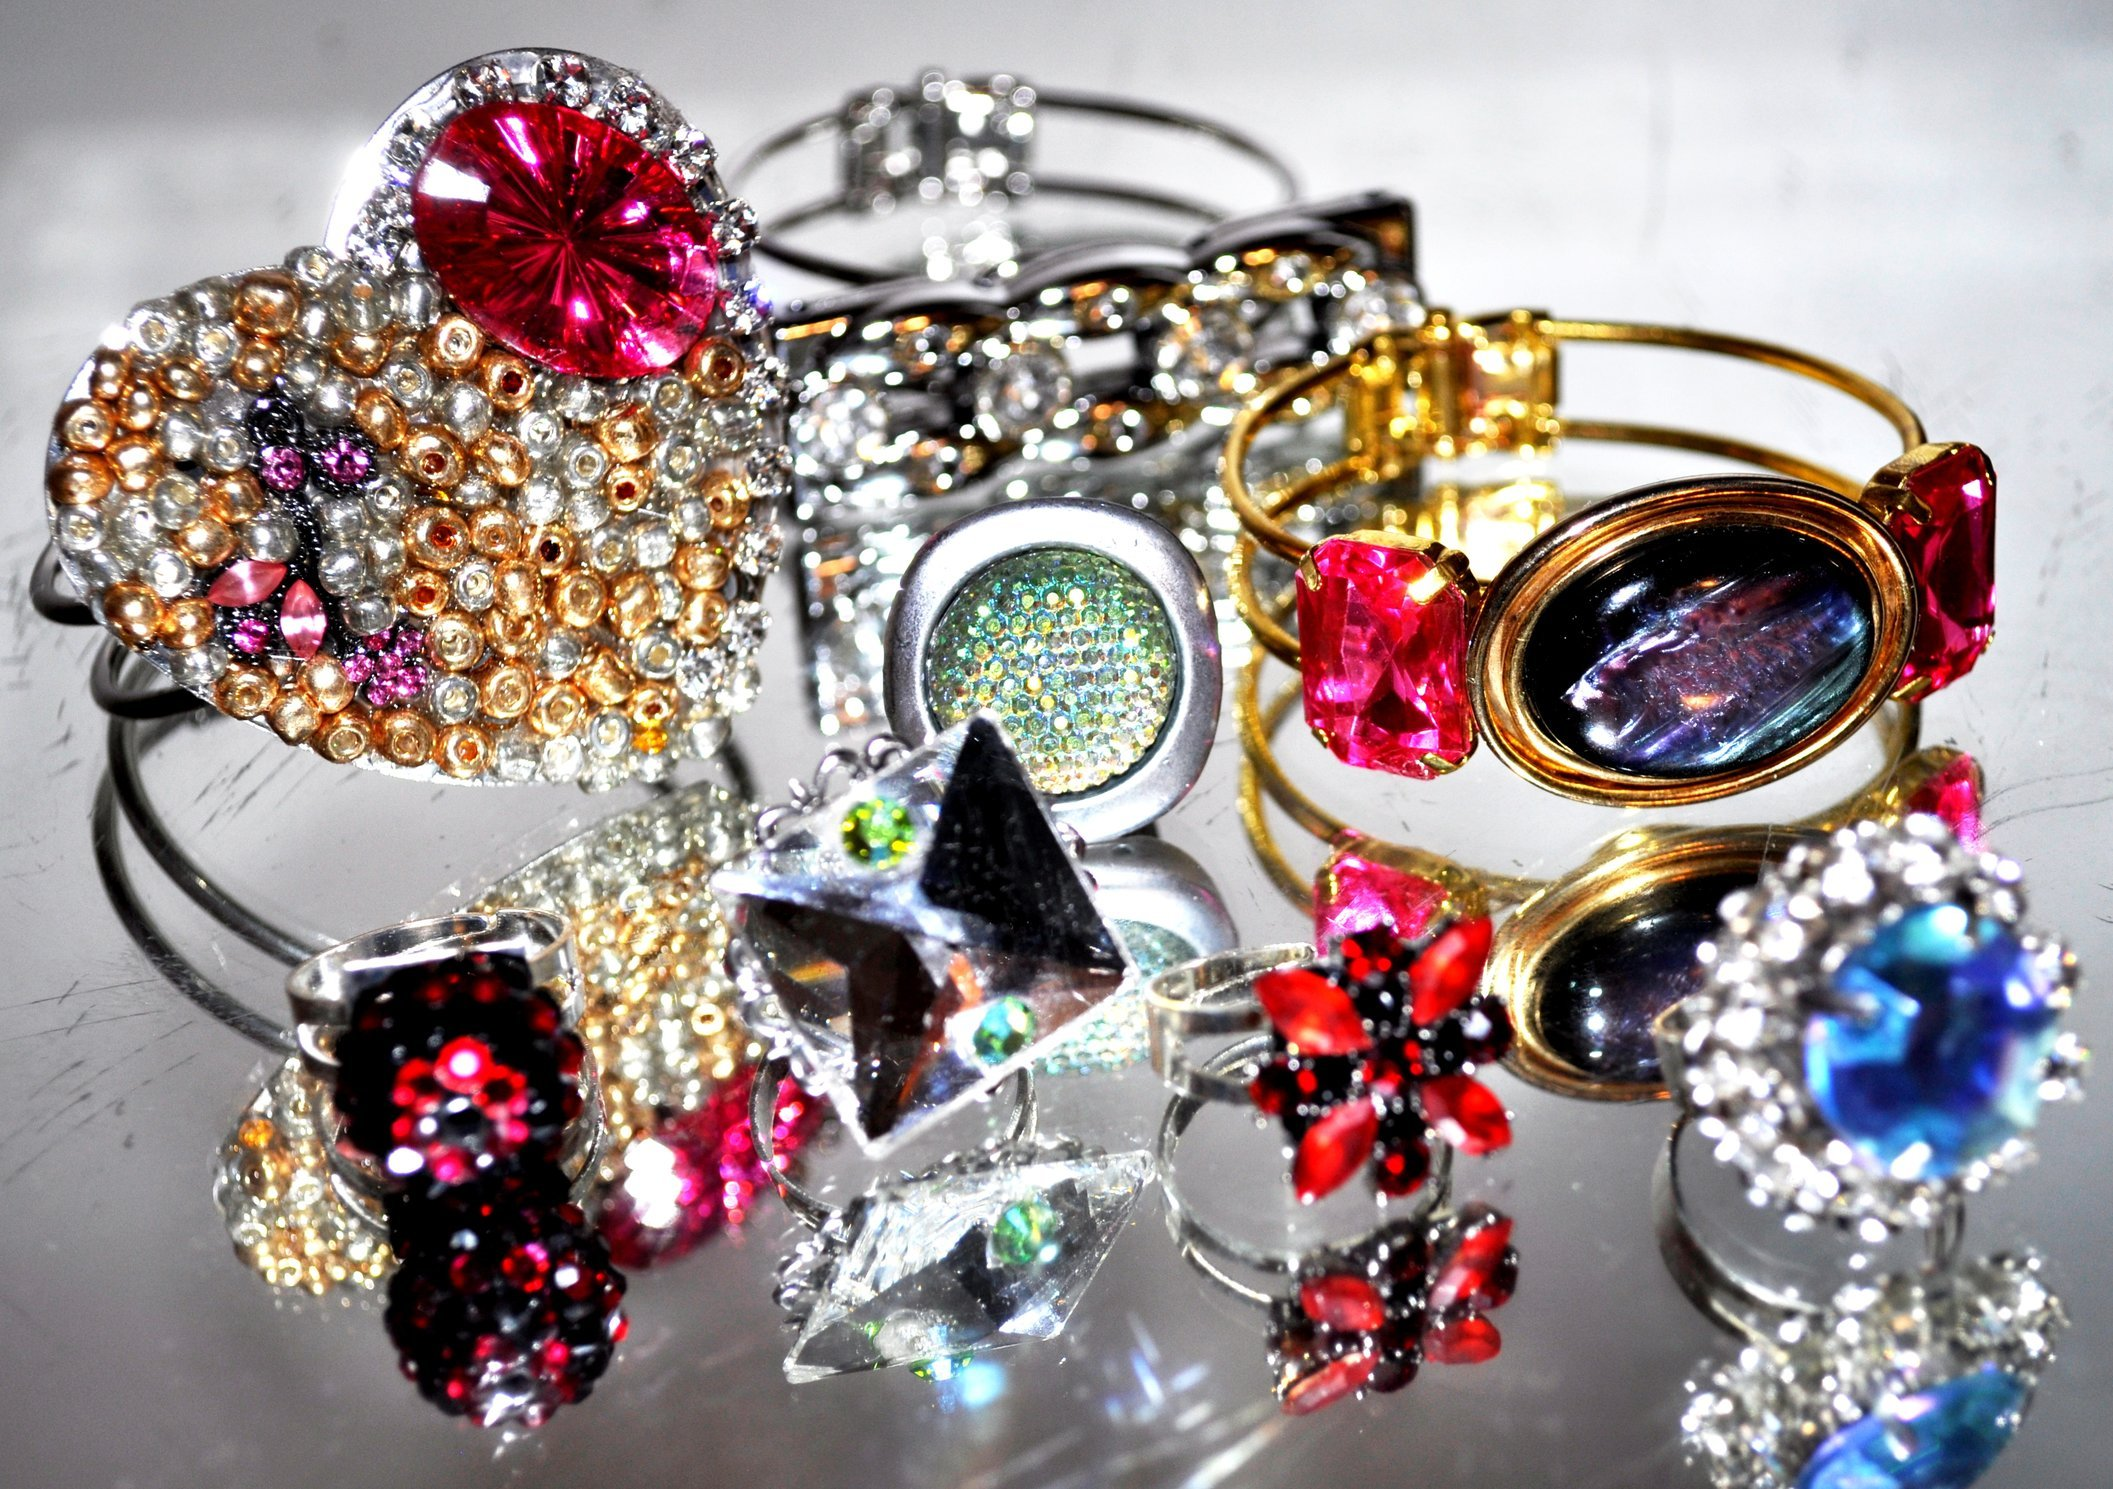 CHANDELIERS RINGS AND BRACELETS